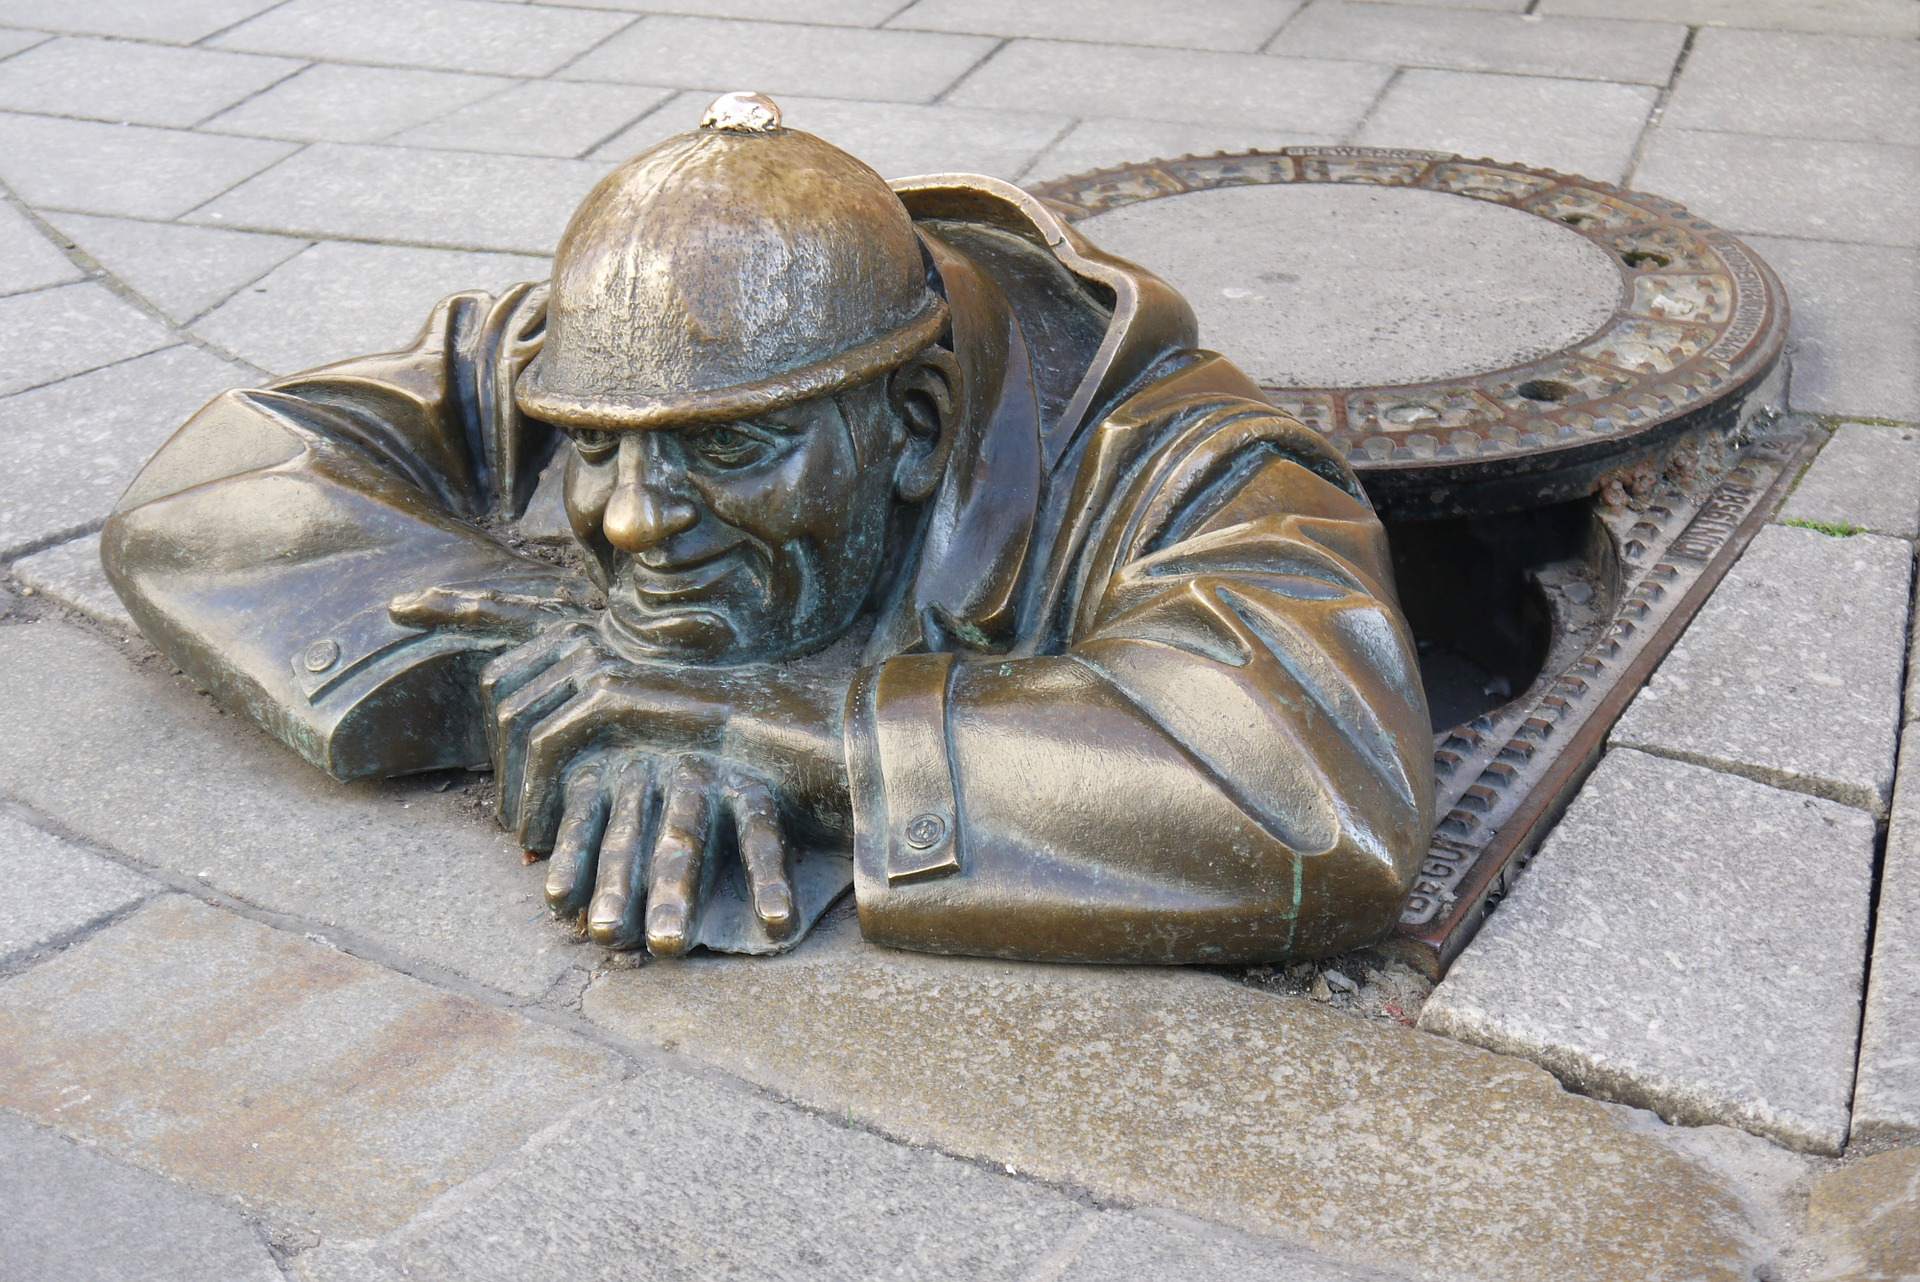 Cumil (or the Watcher) - A local's guide to Bratislava